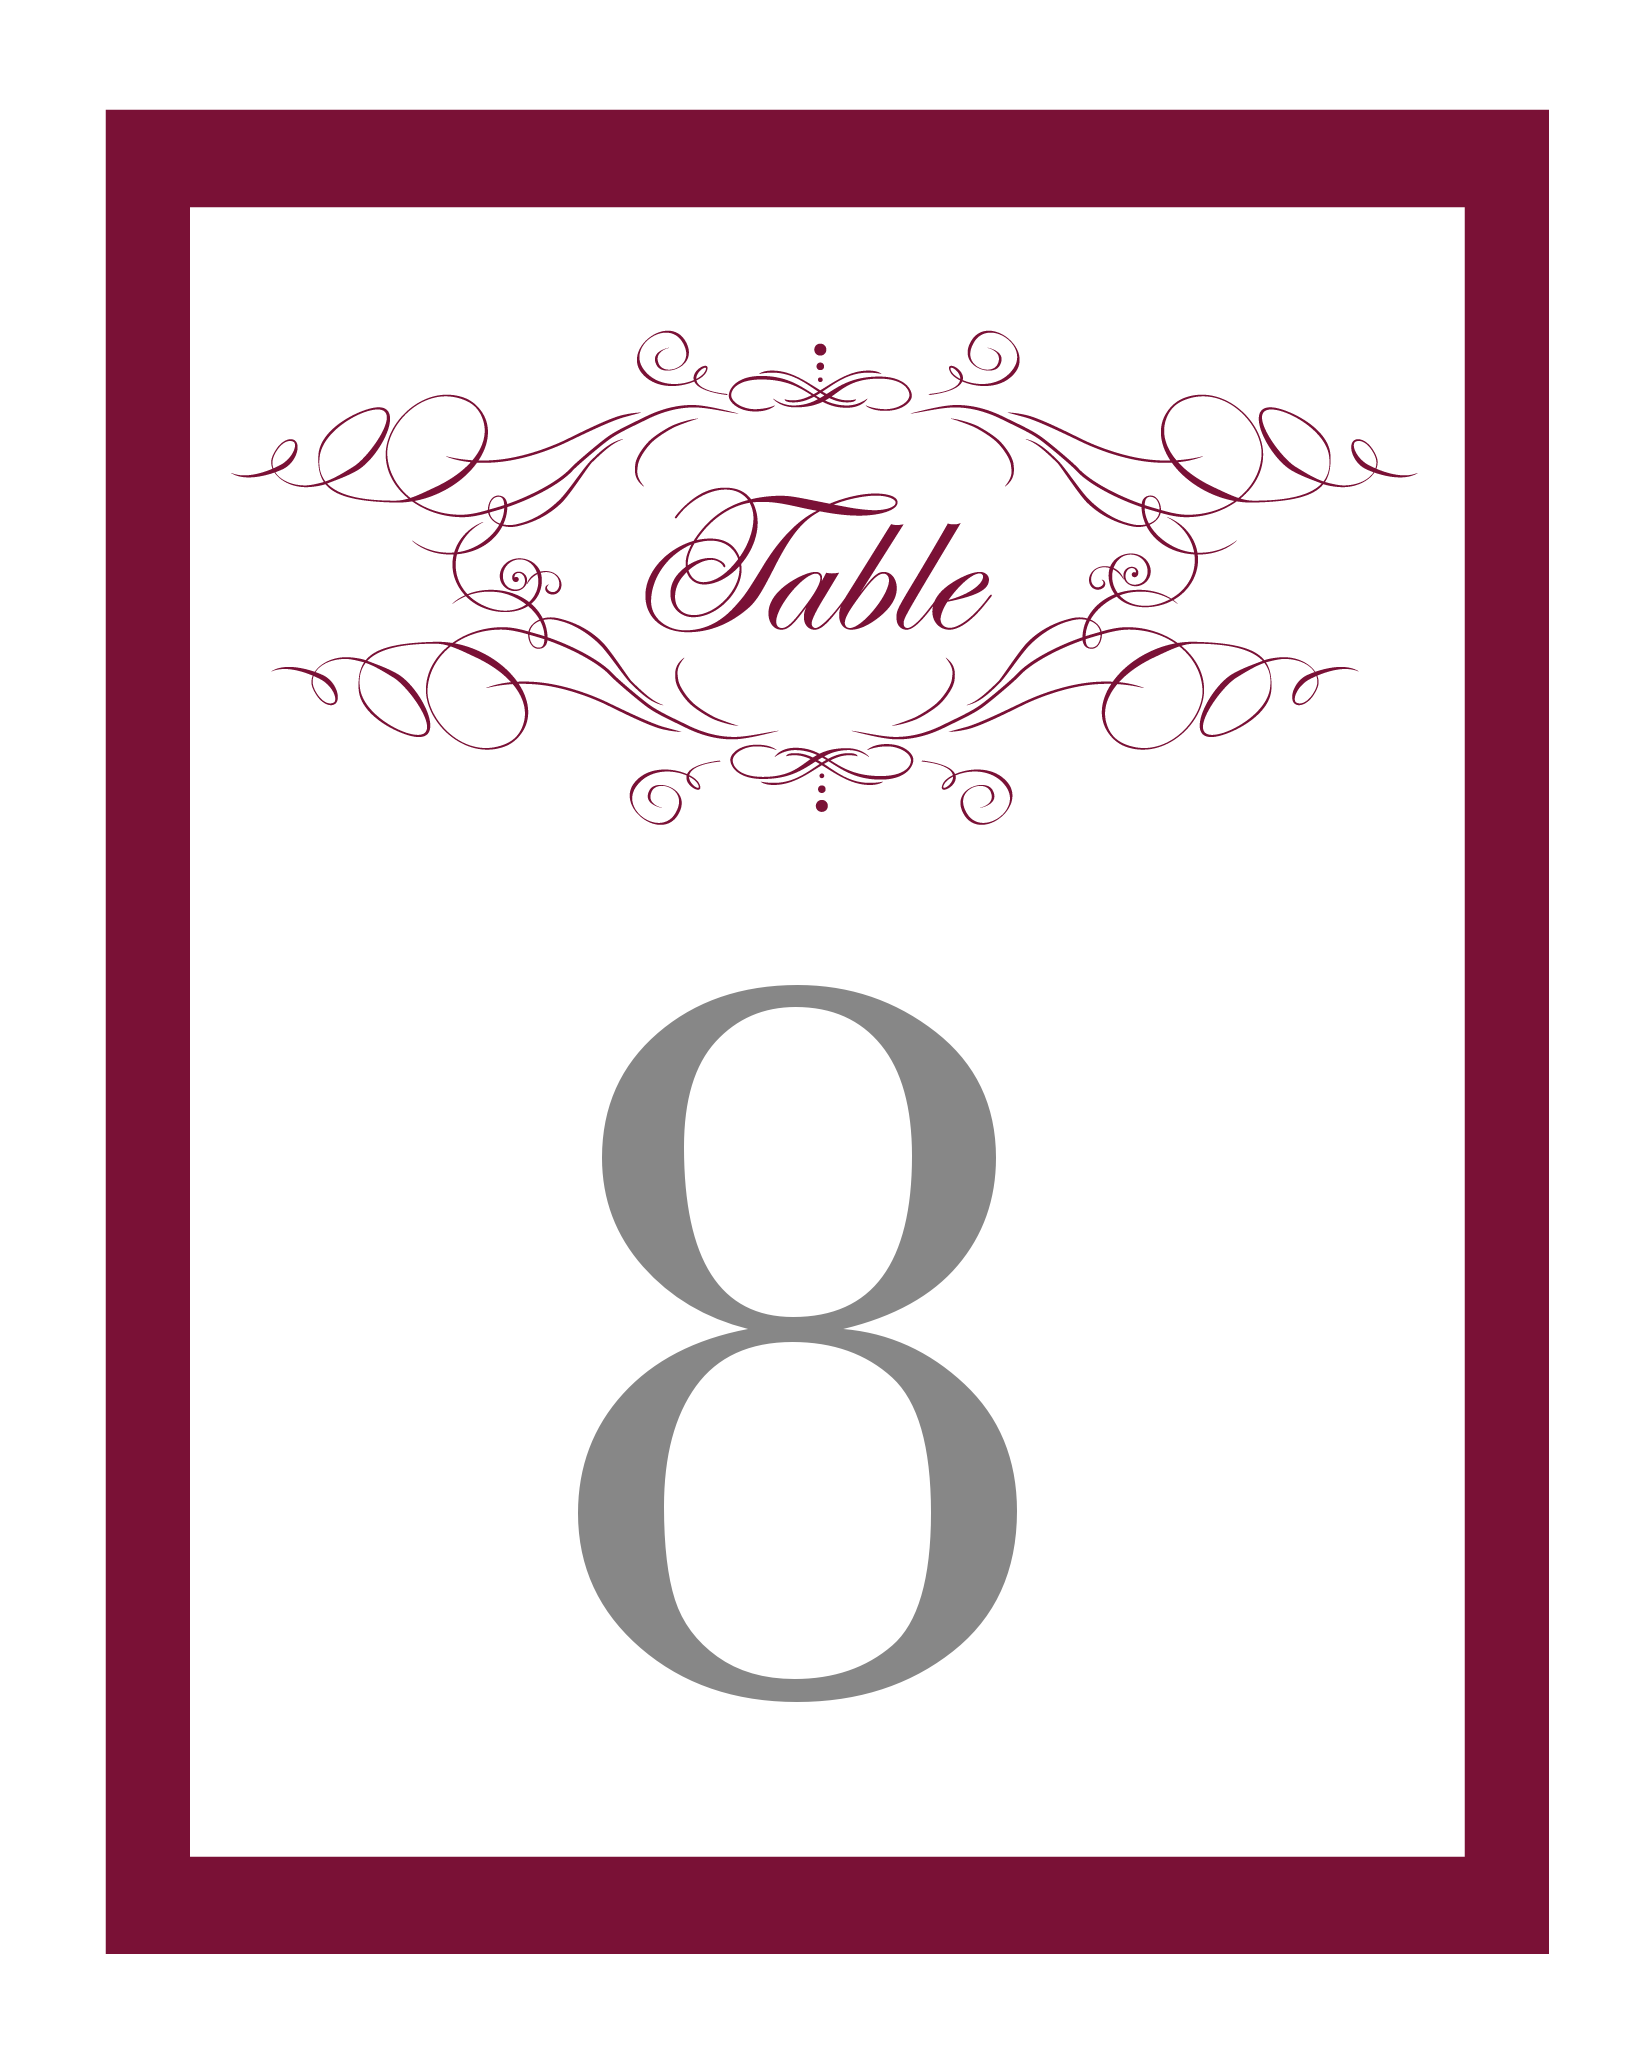 Elegant Monogram Free Printable Wedding Invitations | Table numbers ...